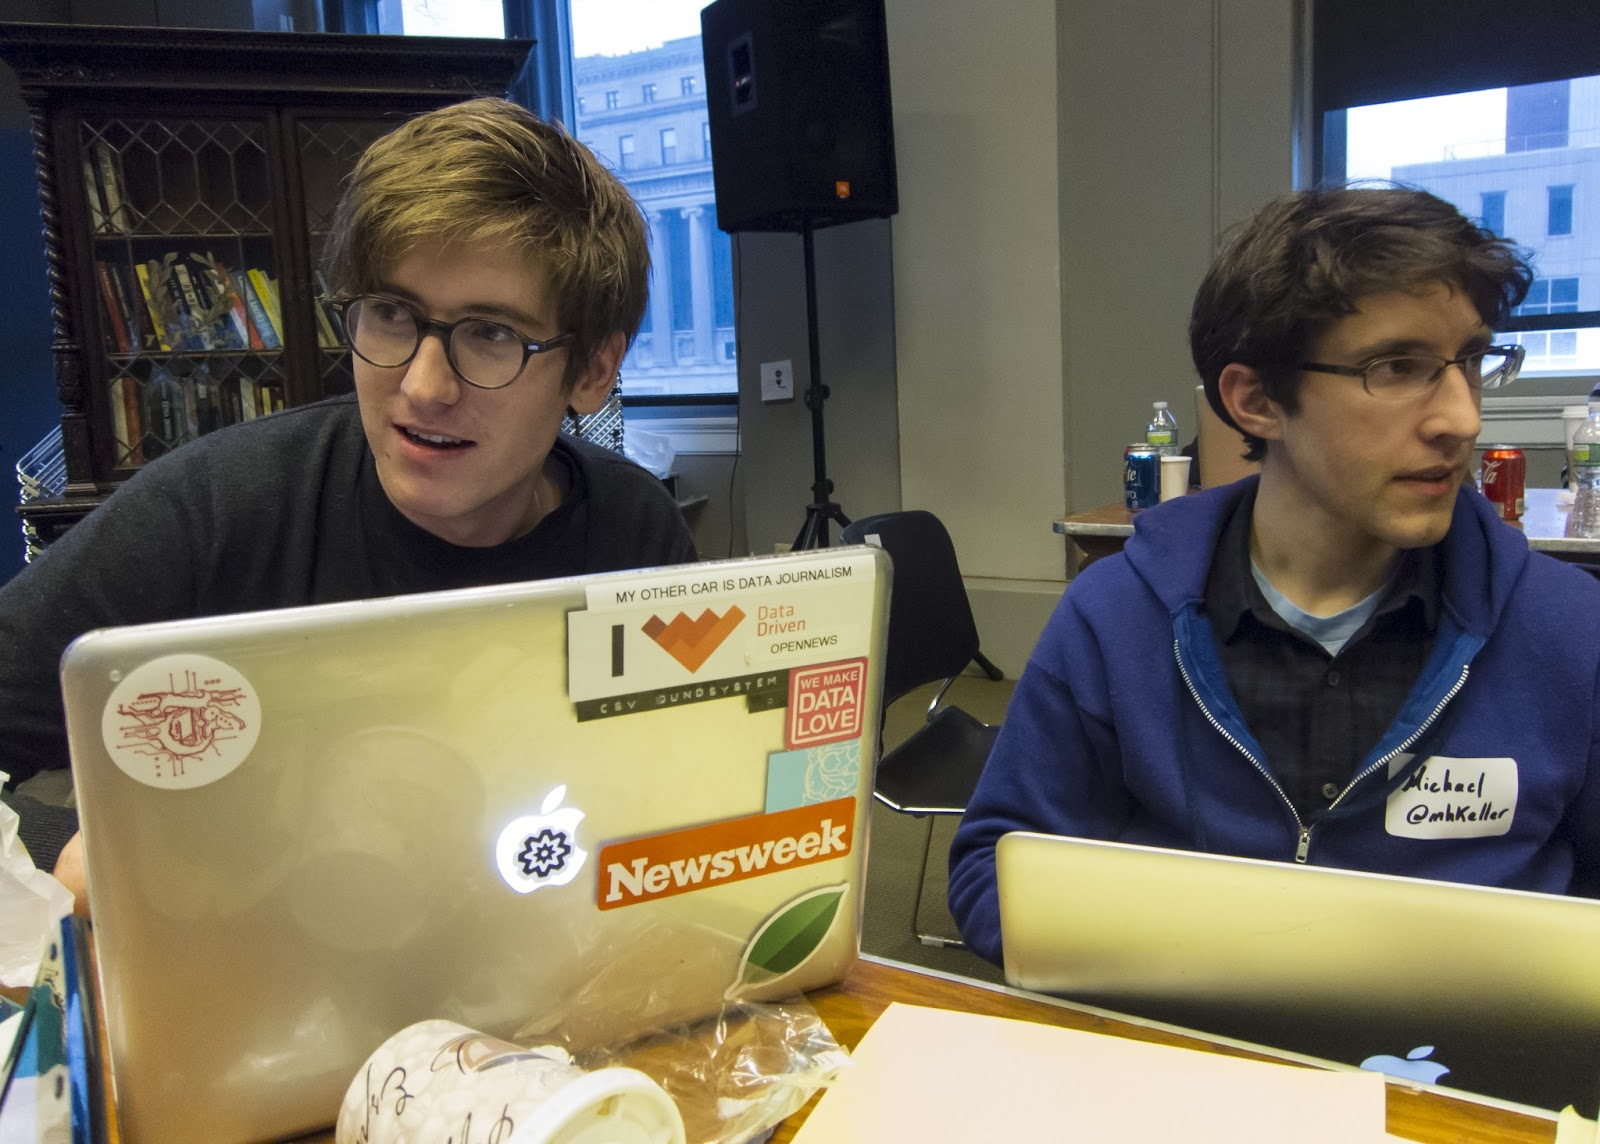 2013-02-17-team-csv-at-hackathon.jpg